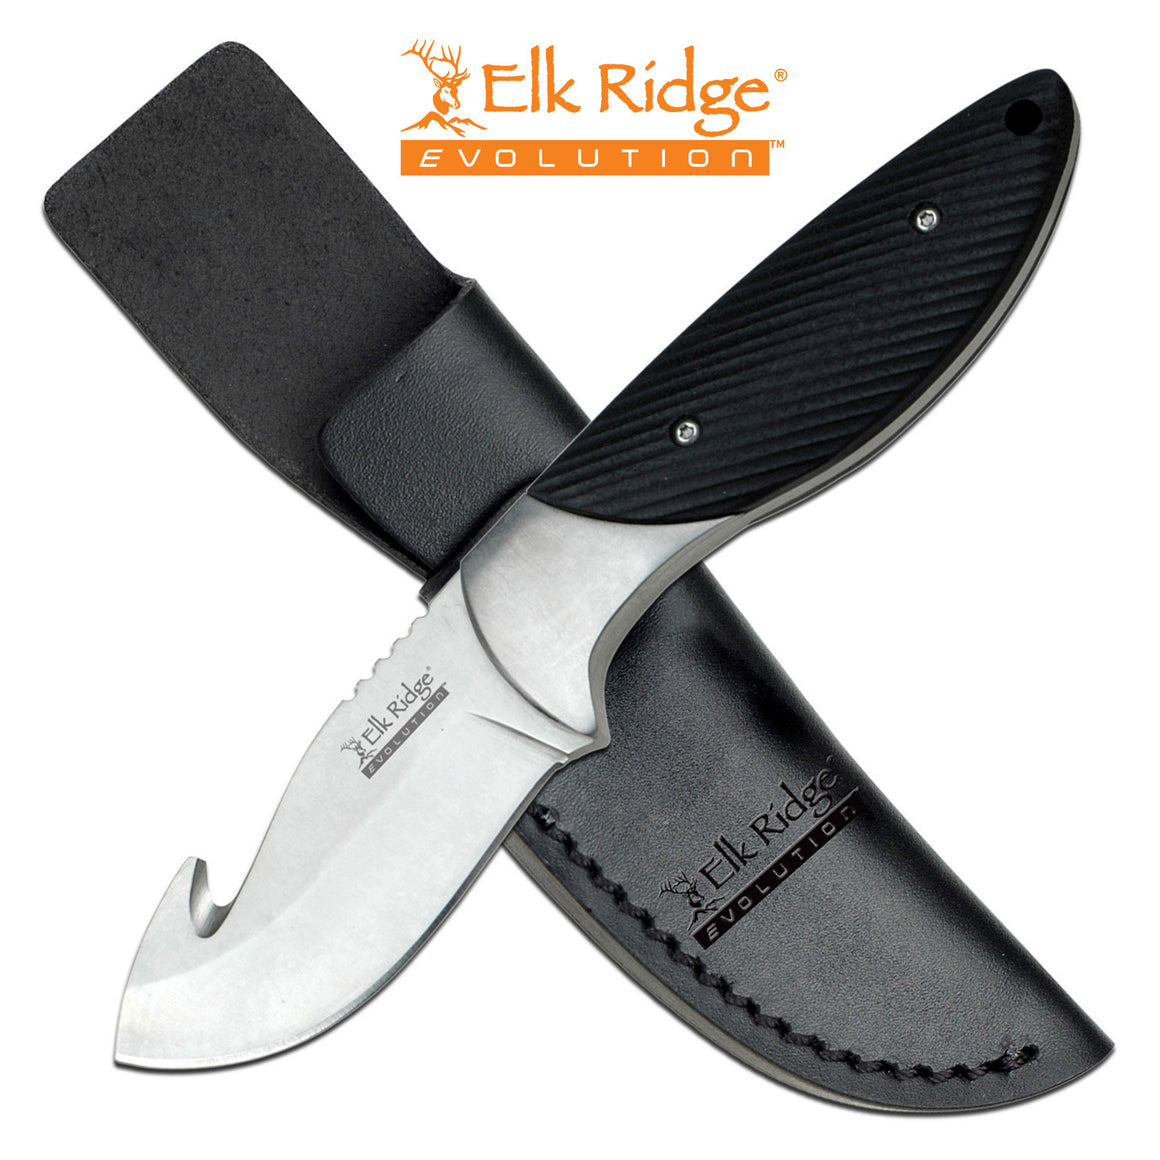 Elk Ridge Evolution ERE-FIX014GH-BK Fixed Blade Knife